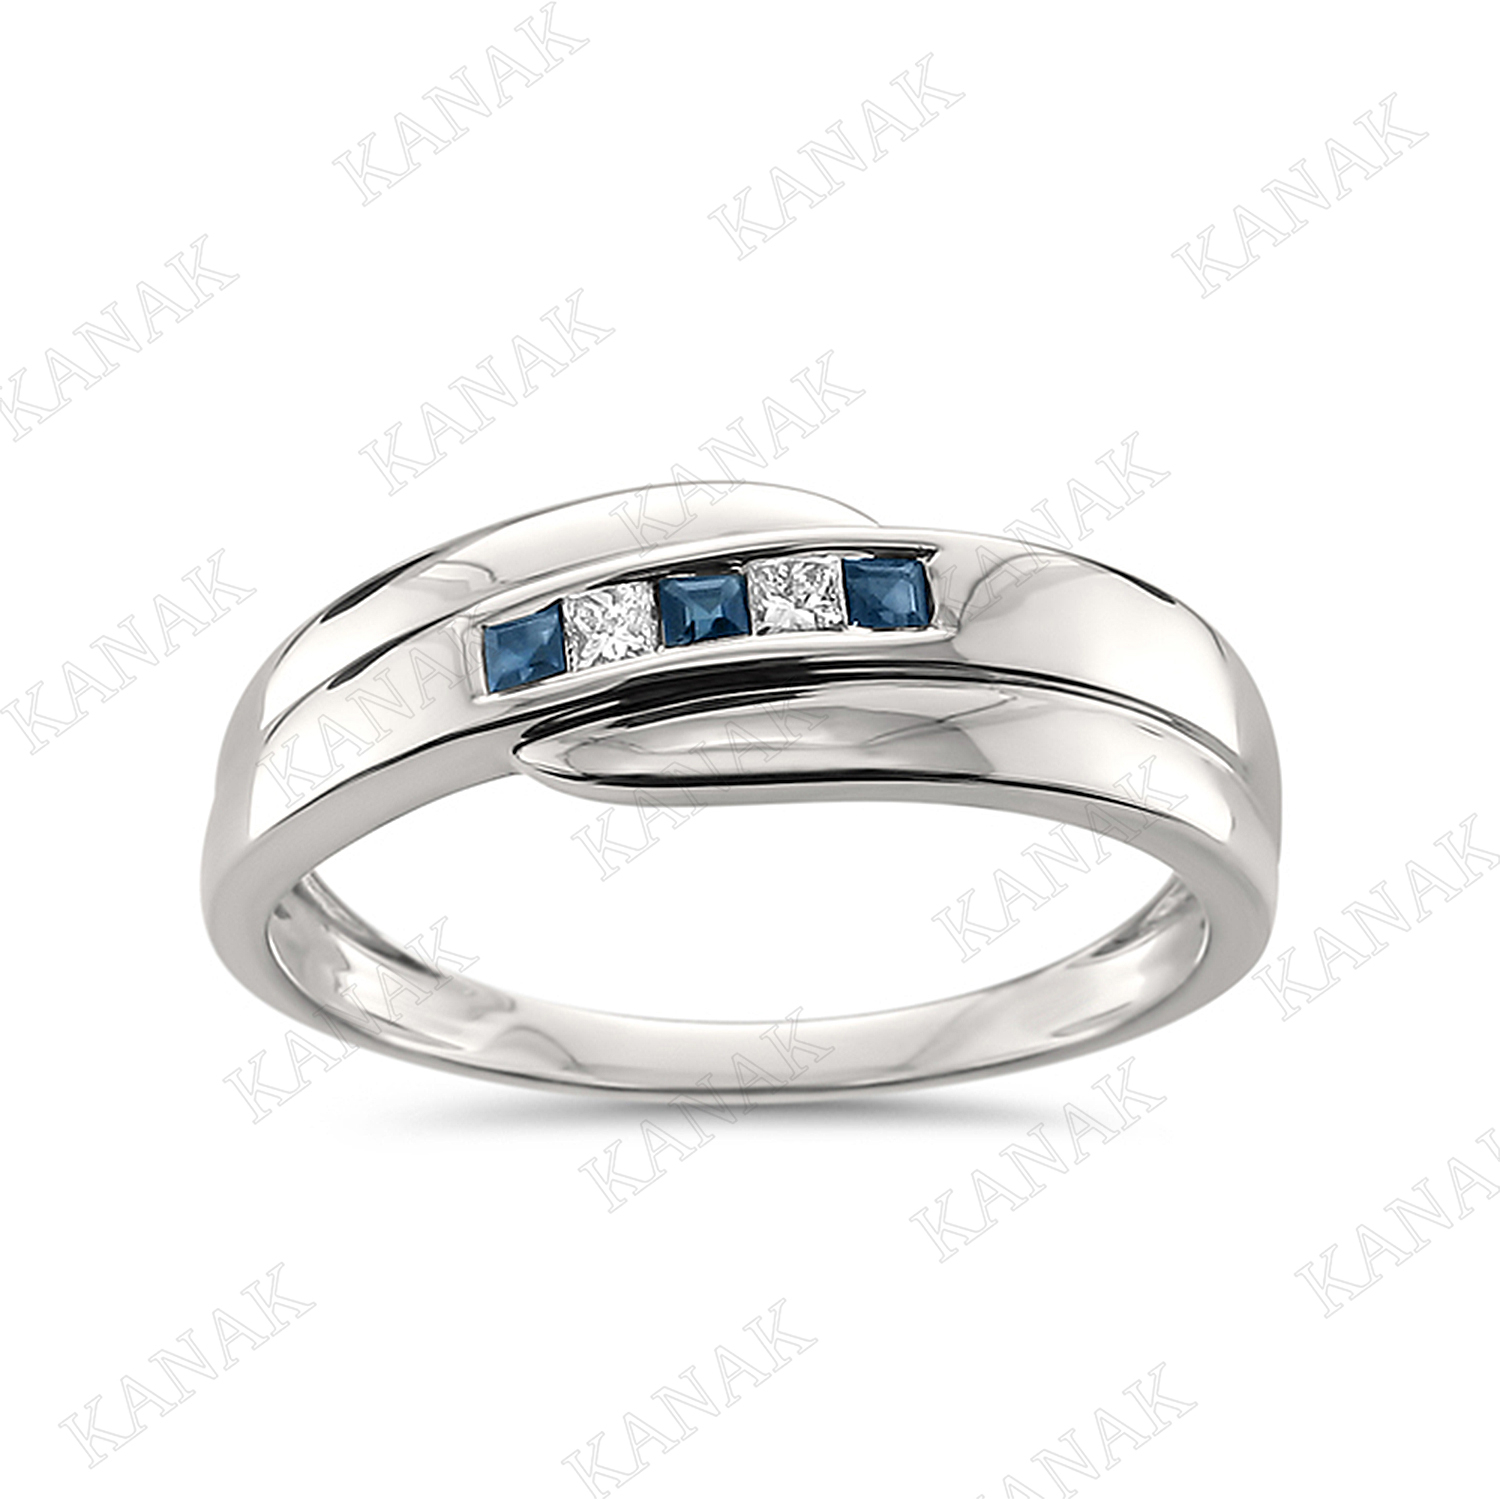 Details About 1/4 Ct Princess Cut Diamond & Sapphire Men's Wedding Band  Ring 14K White Gold Throughout Most Recent Certified Princess Cut Diamond Anniversary Bands In White Gold (Gallery 21 of 25)